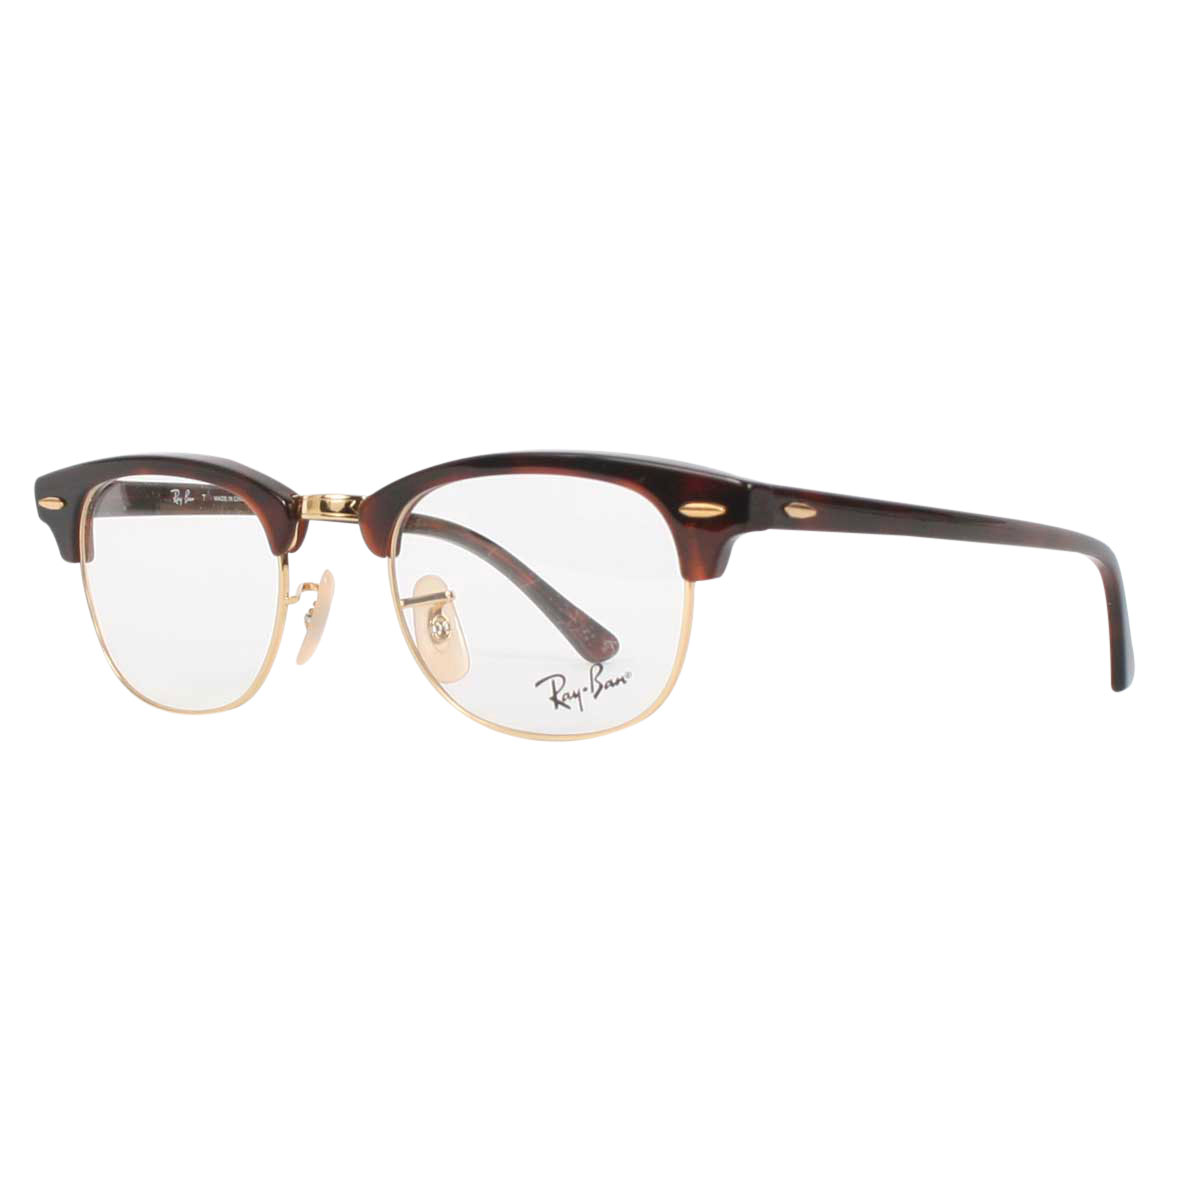 171a9293637 ... new zealand ray ban unisex clubmaster optical frames in red havana  f869c 1f415